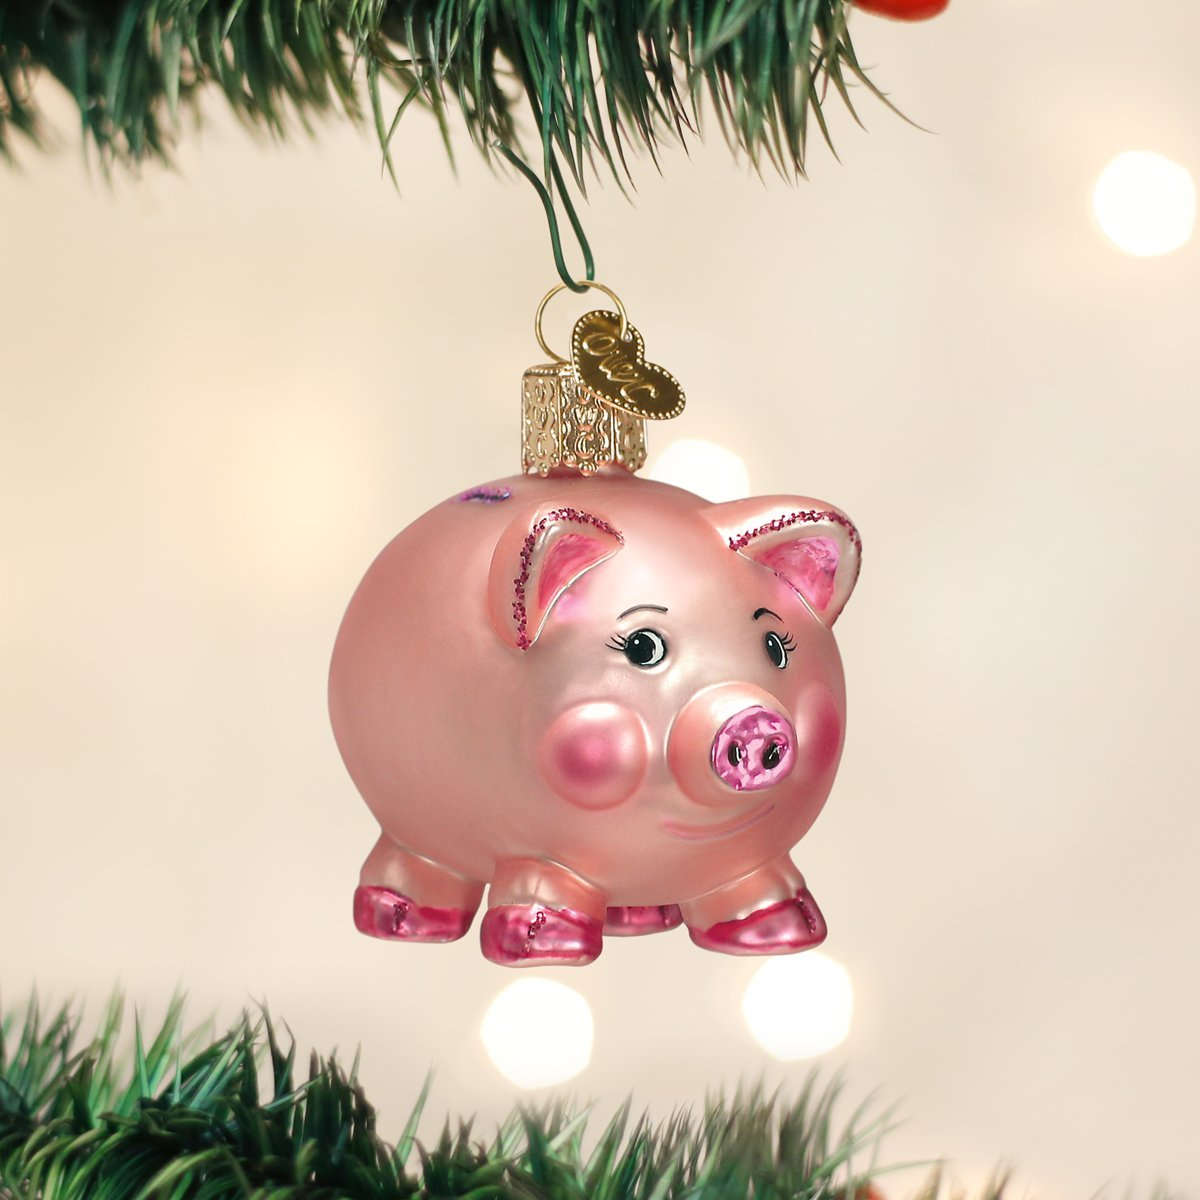 Pig christmas ornaments - Amazon Com Old World Christmas Piggy Bank Glass Blown Ornament Home Kitchen